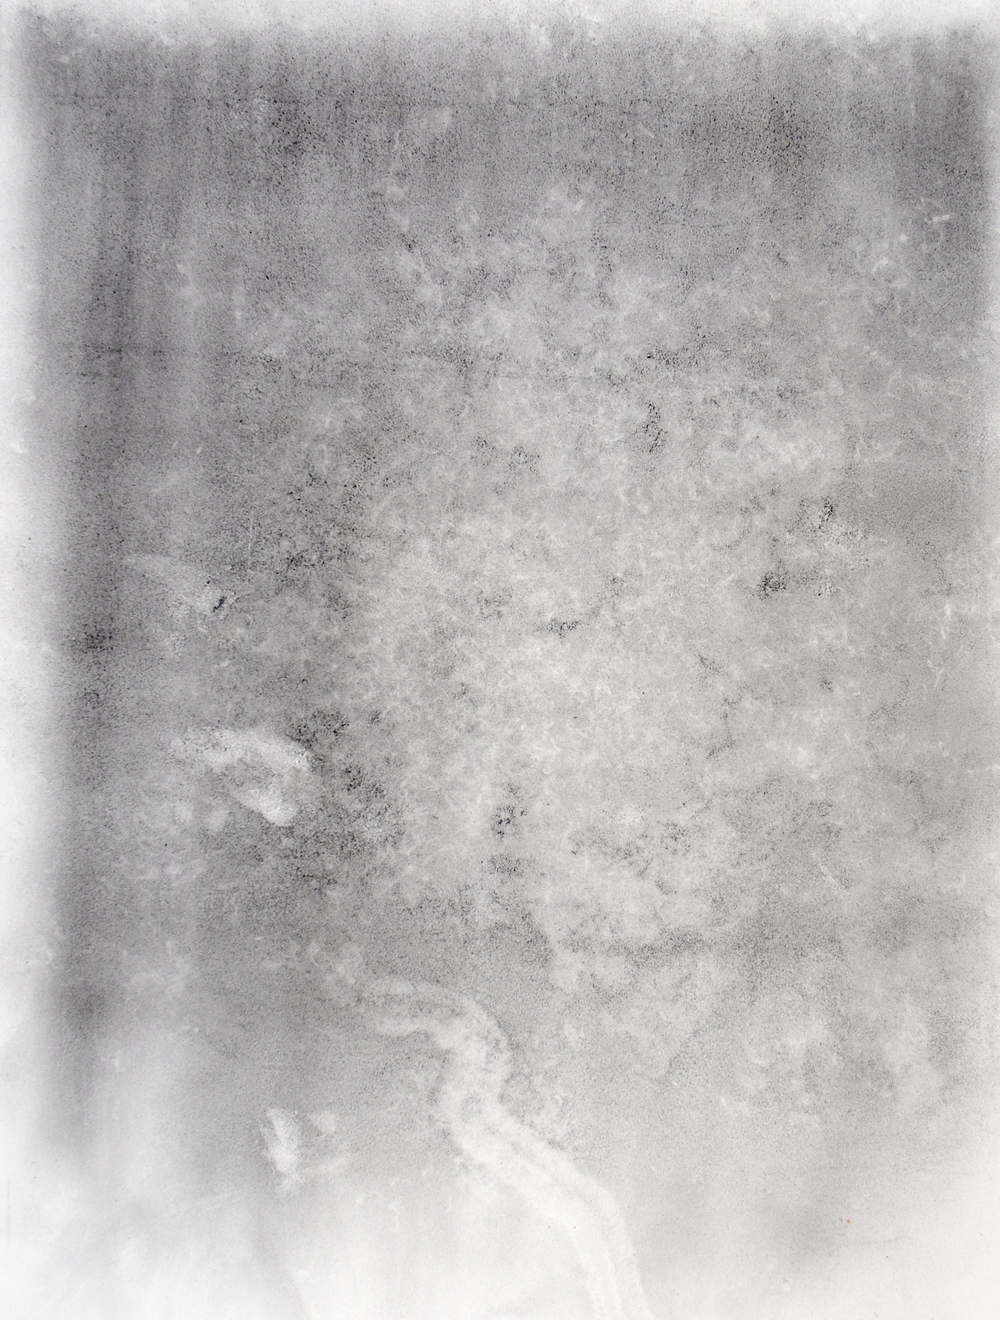 Moth drawing, charcoal dust on paper, 2006